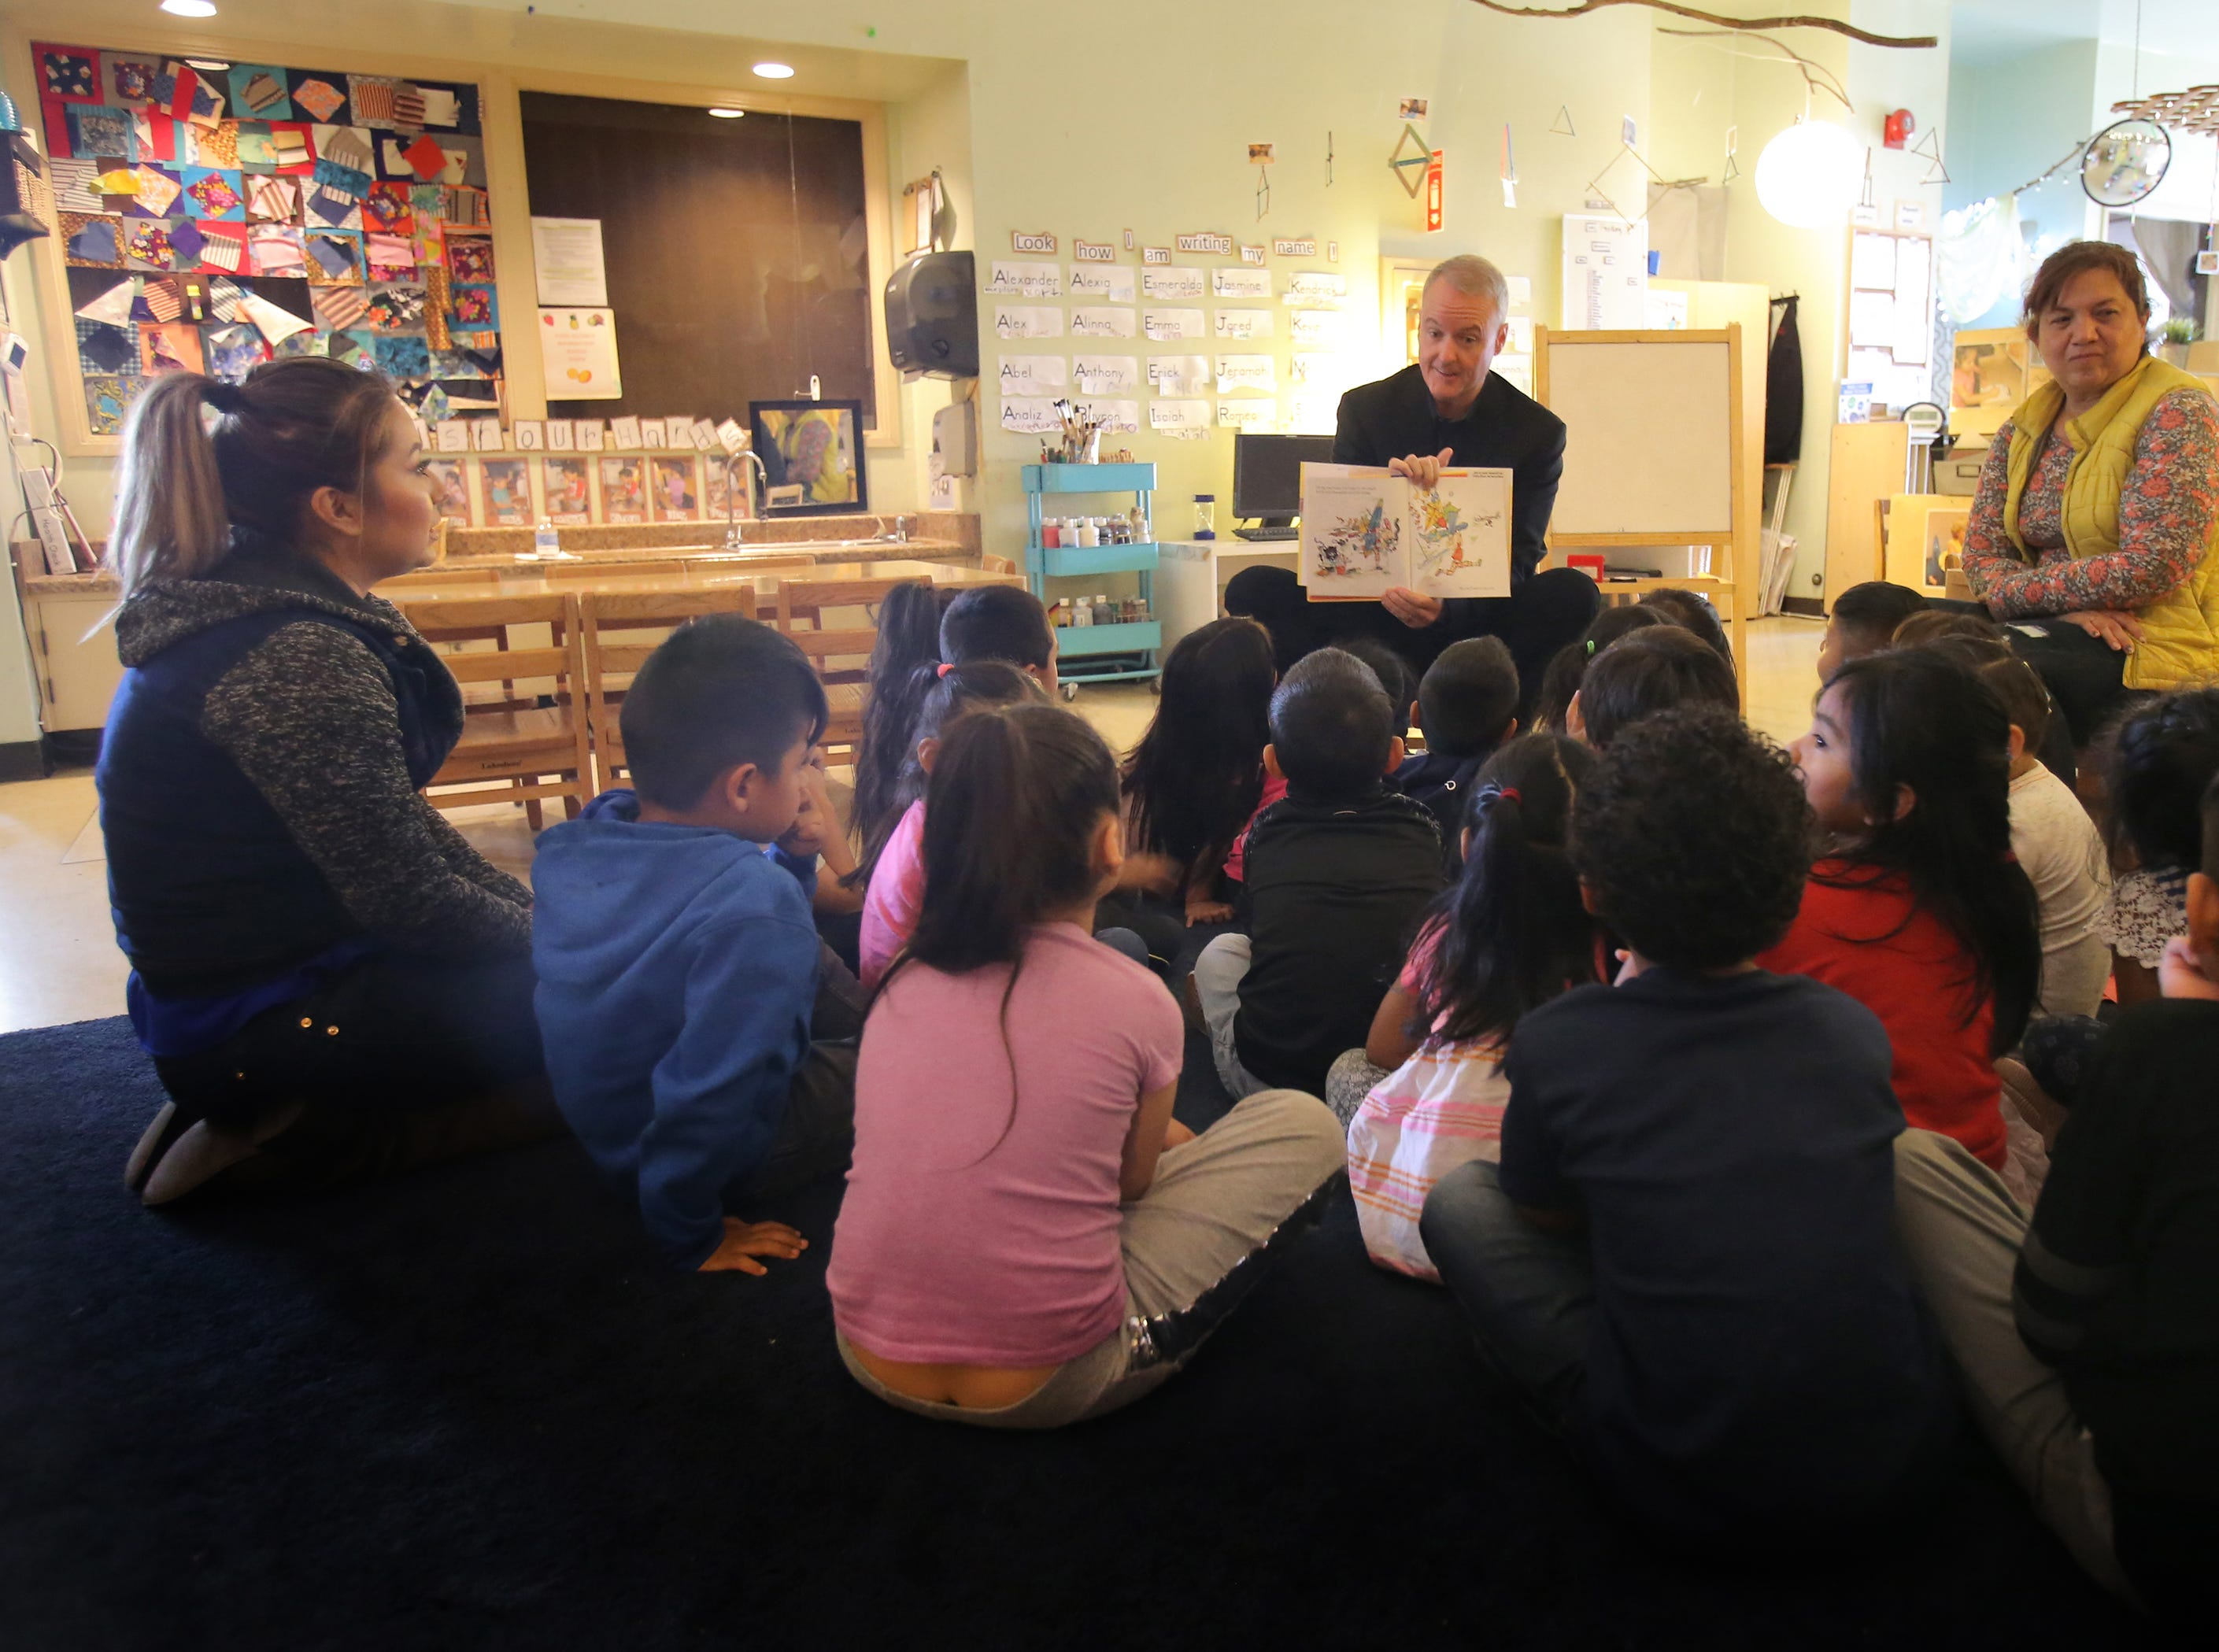 Children from La Escuelita Child Development Center in Oxnard listen as Ventura County Executive Officer Michael Powers reads a book during the Take 5 and Read to Kids campaign on Friday in Oxnard.